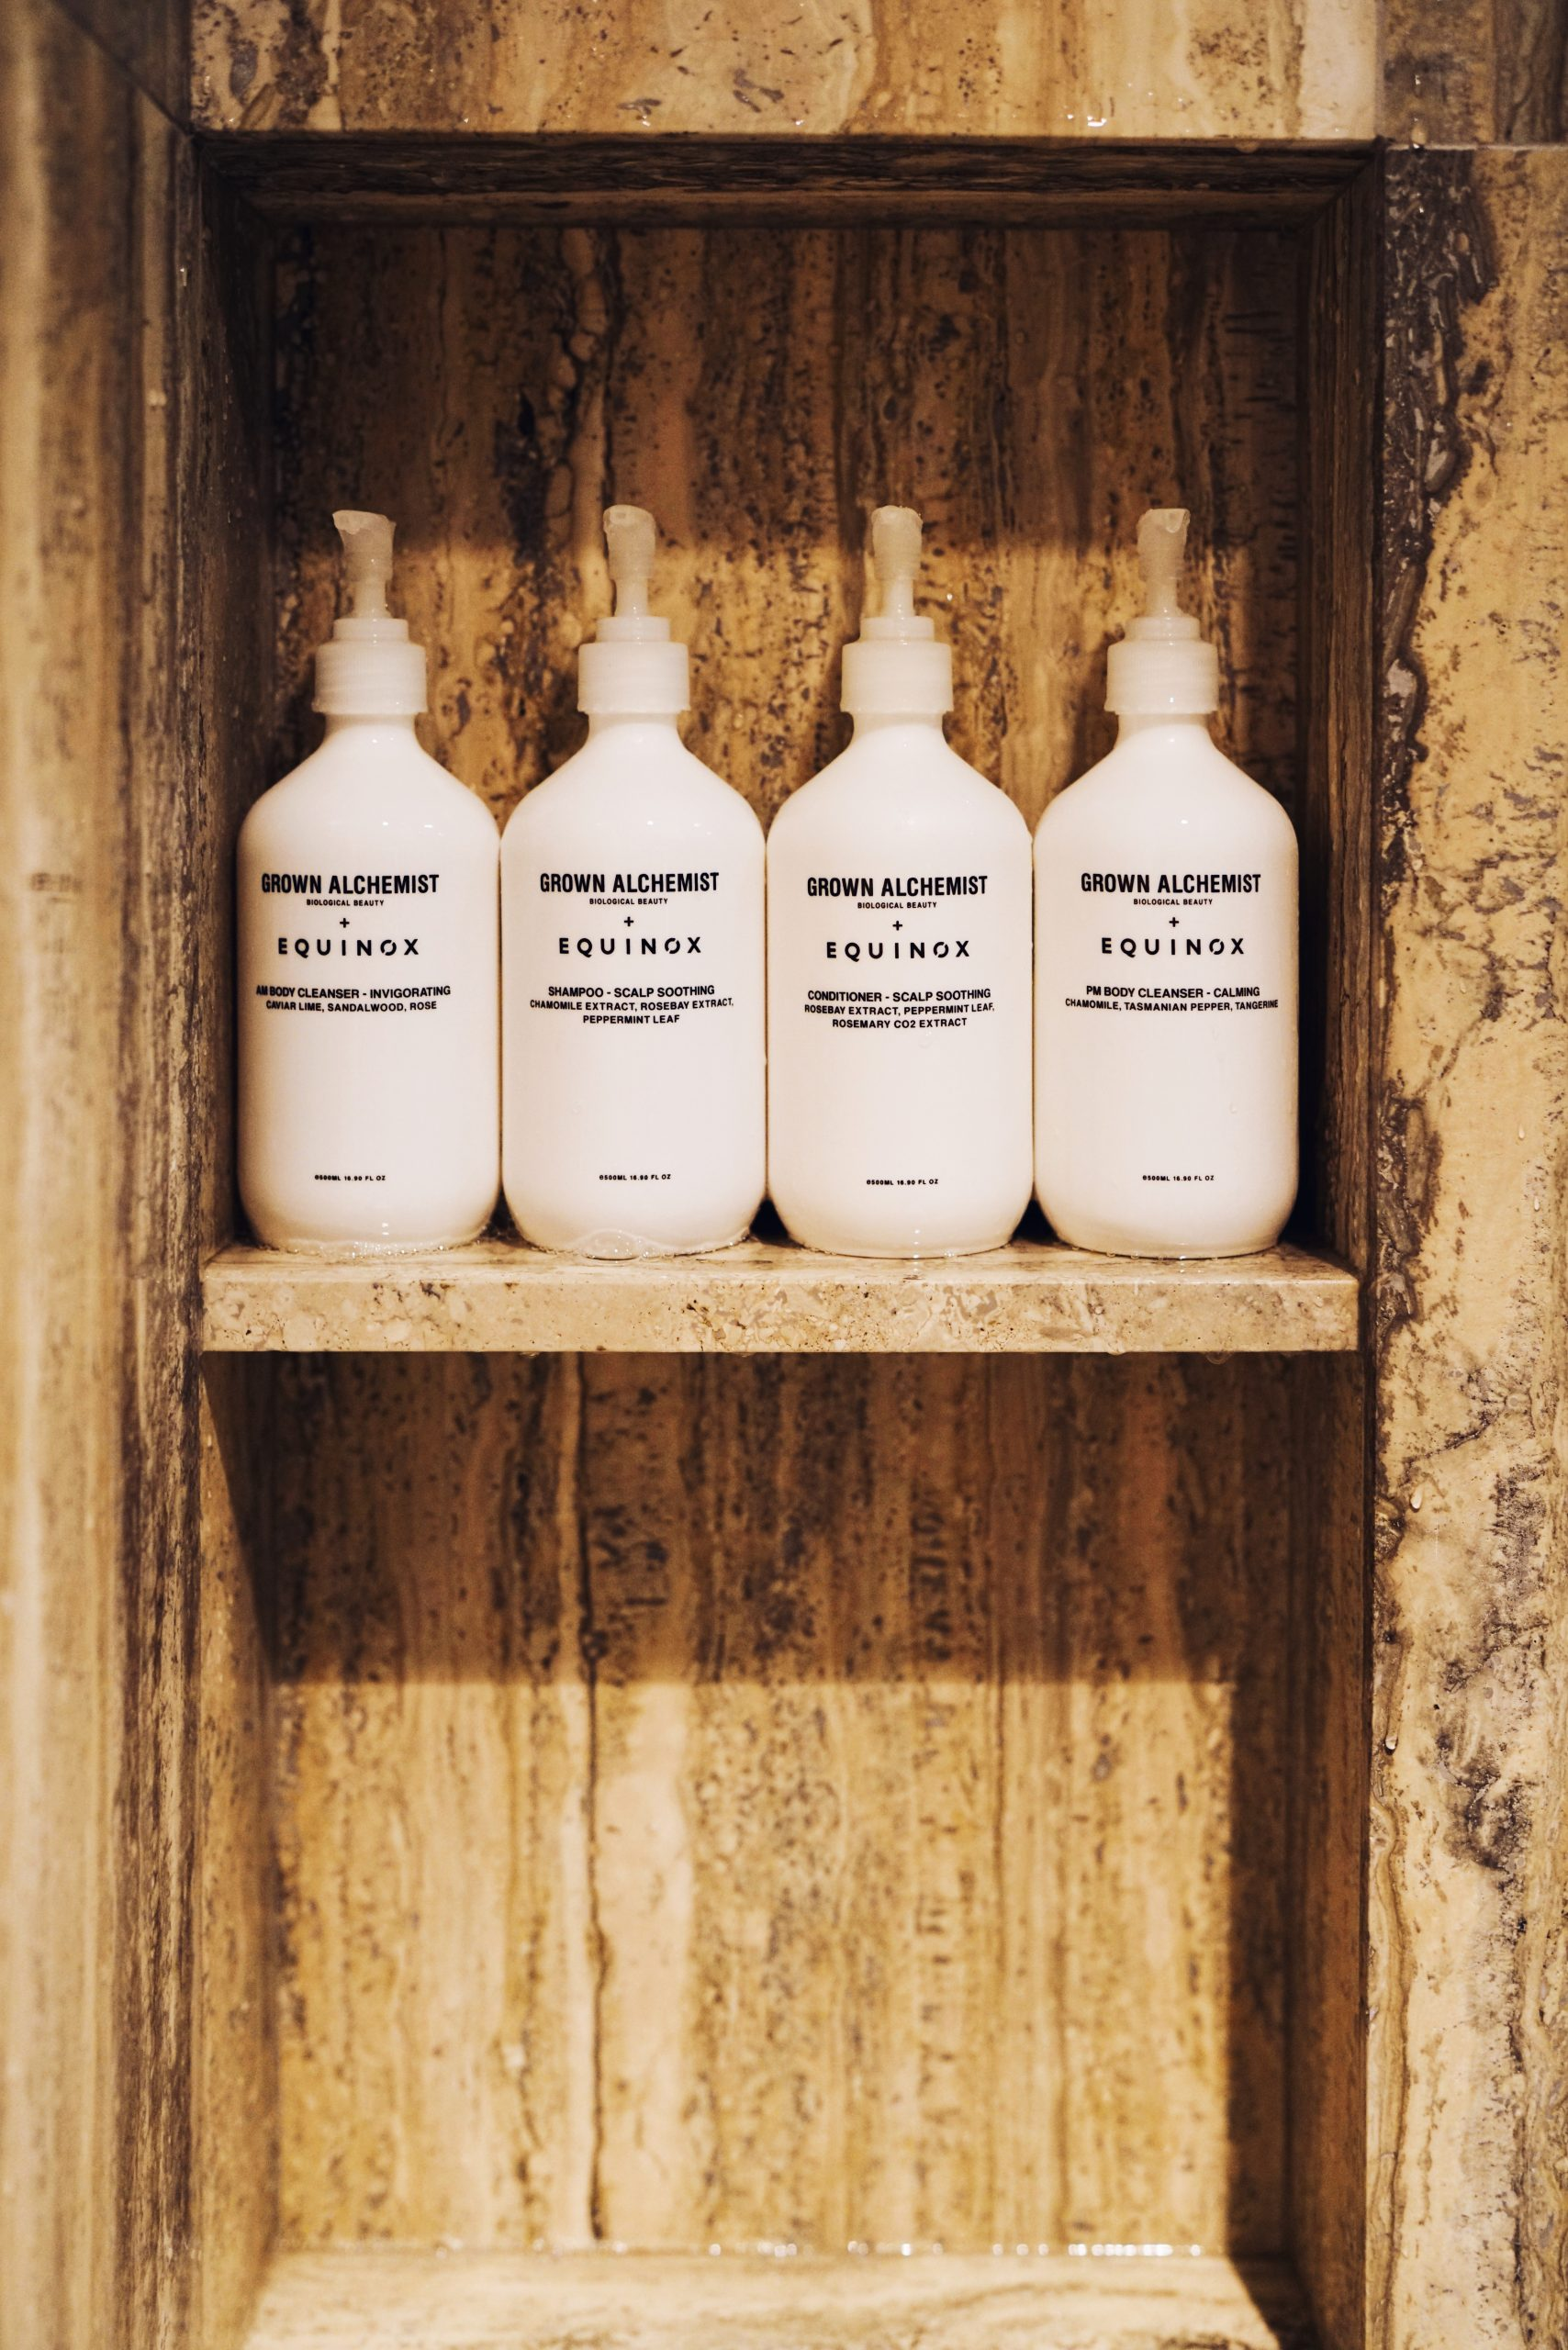 grown alchemist bathroom amenities